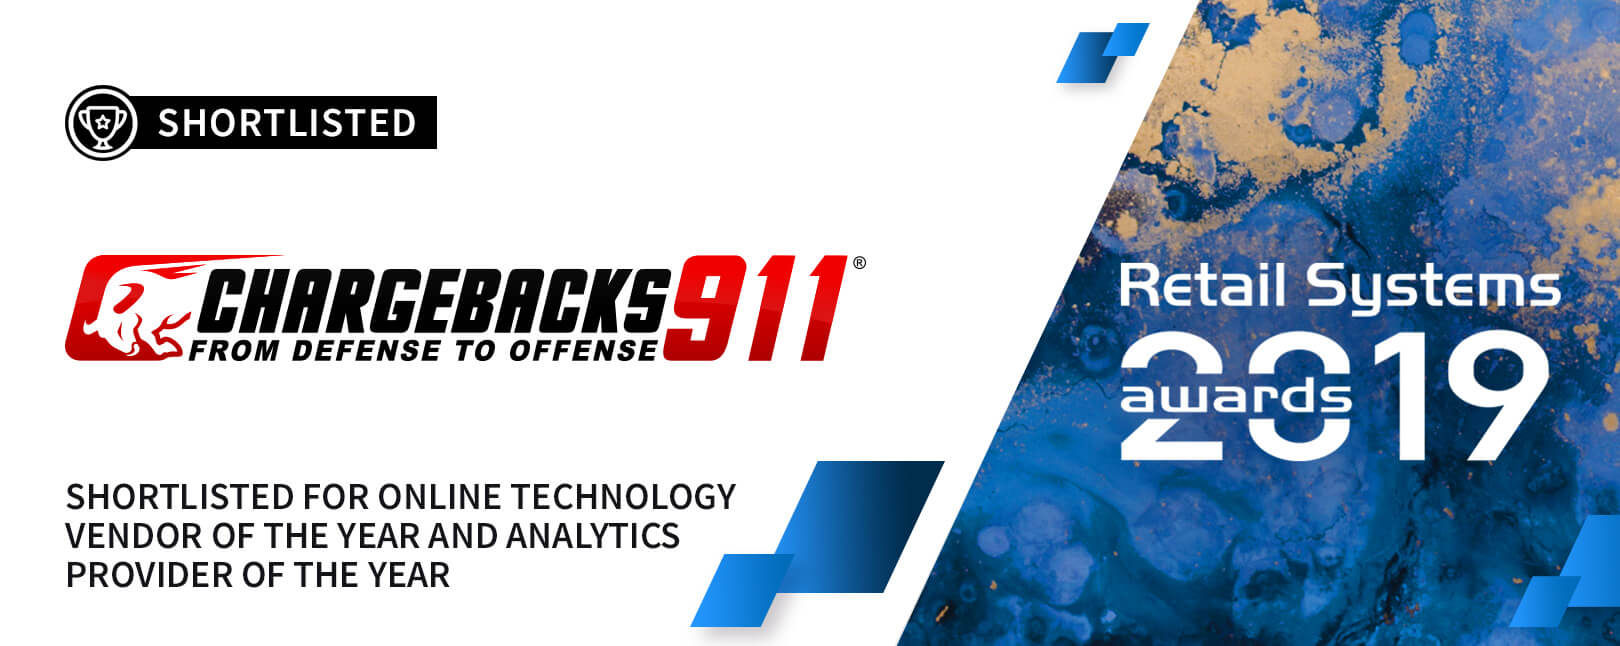 Chargebacks911® Selected for Retail Systems Awards 2019